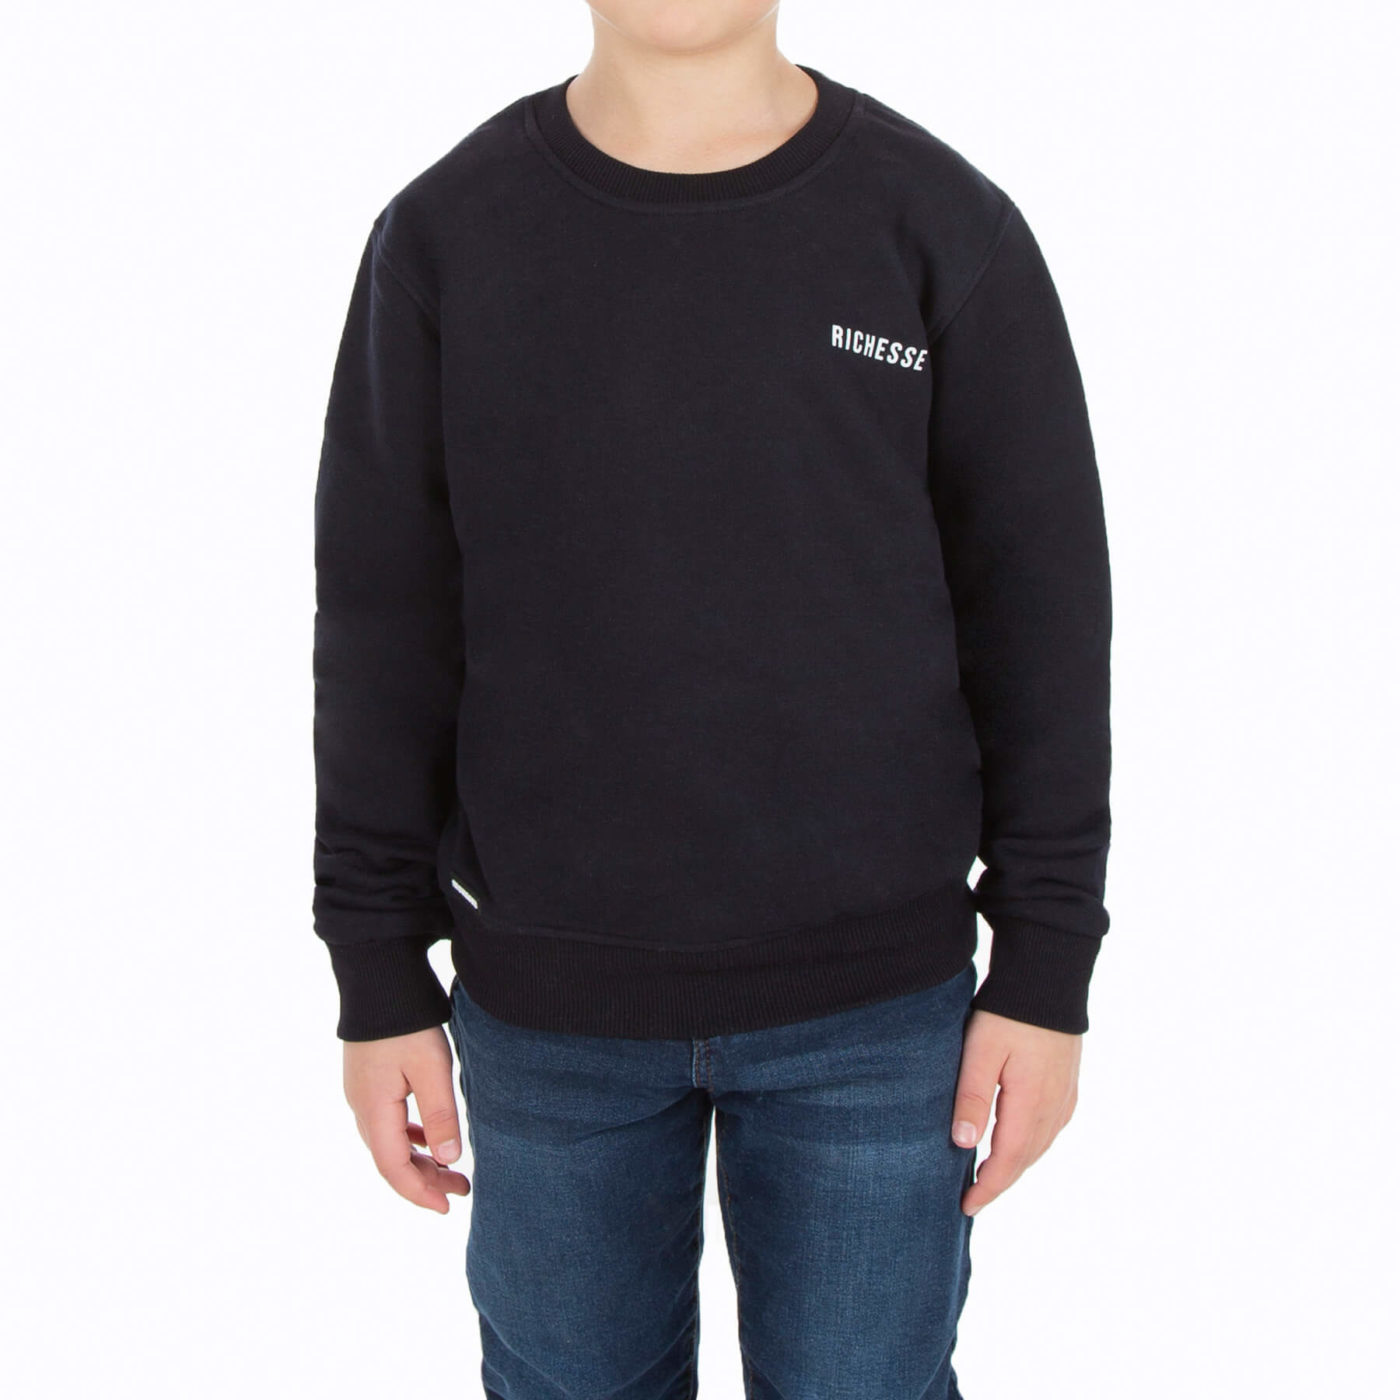 1075 – Richesse Crewneck JR-09